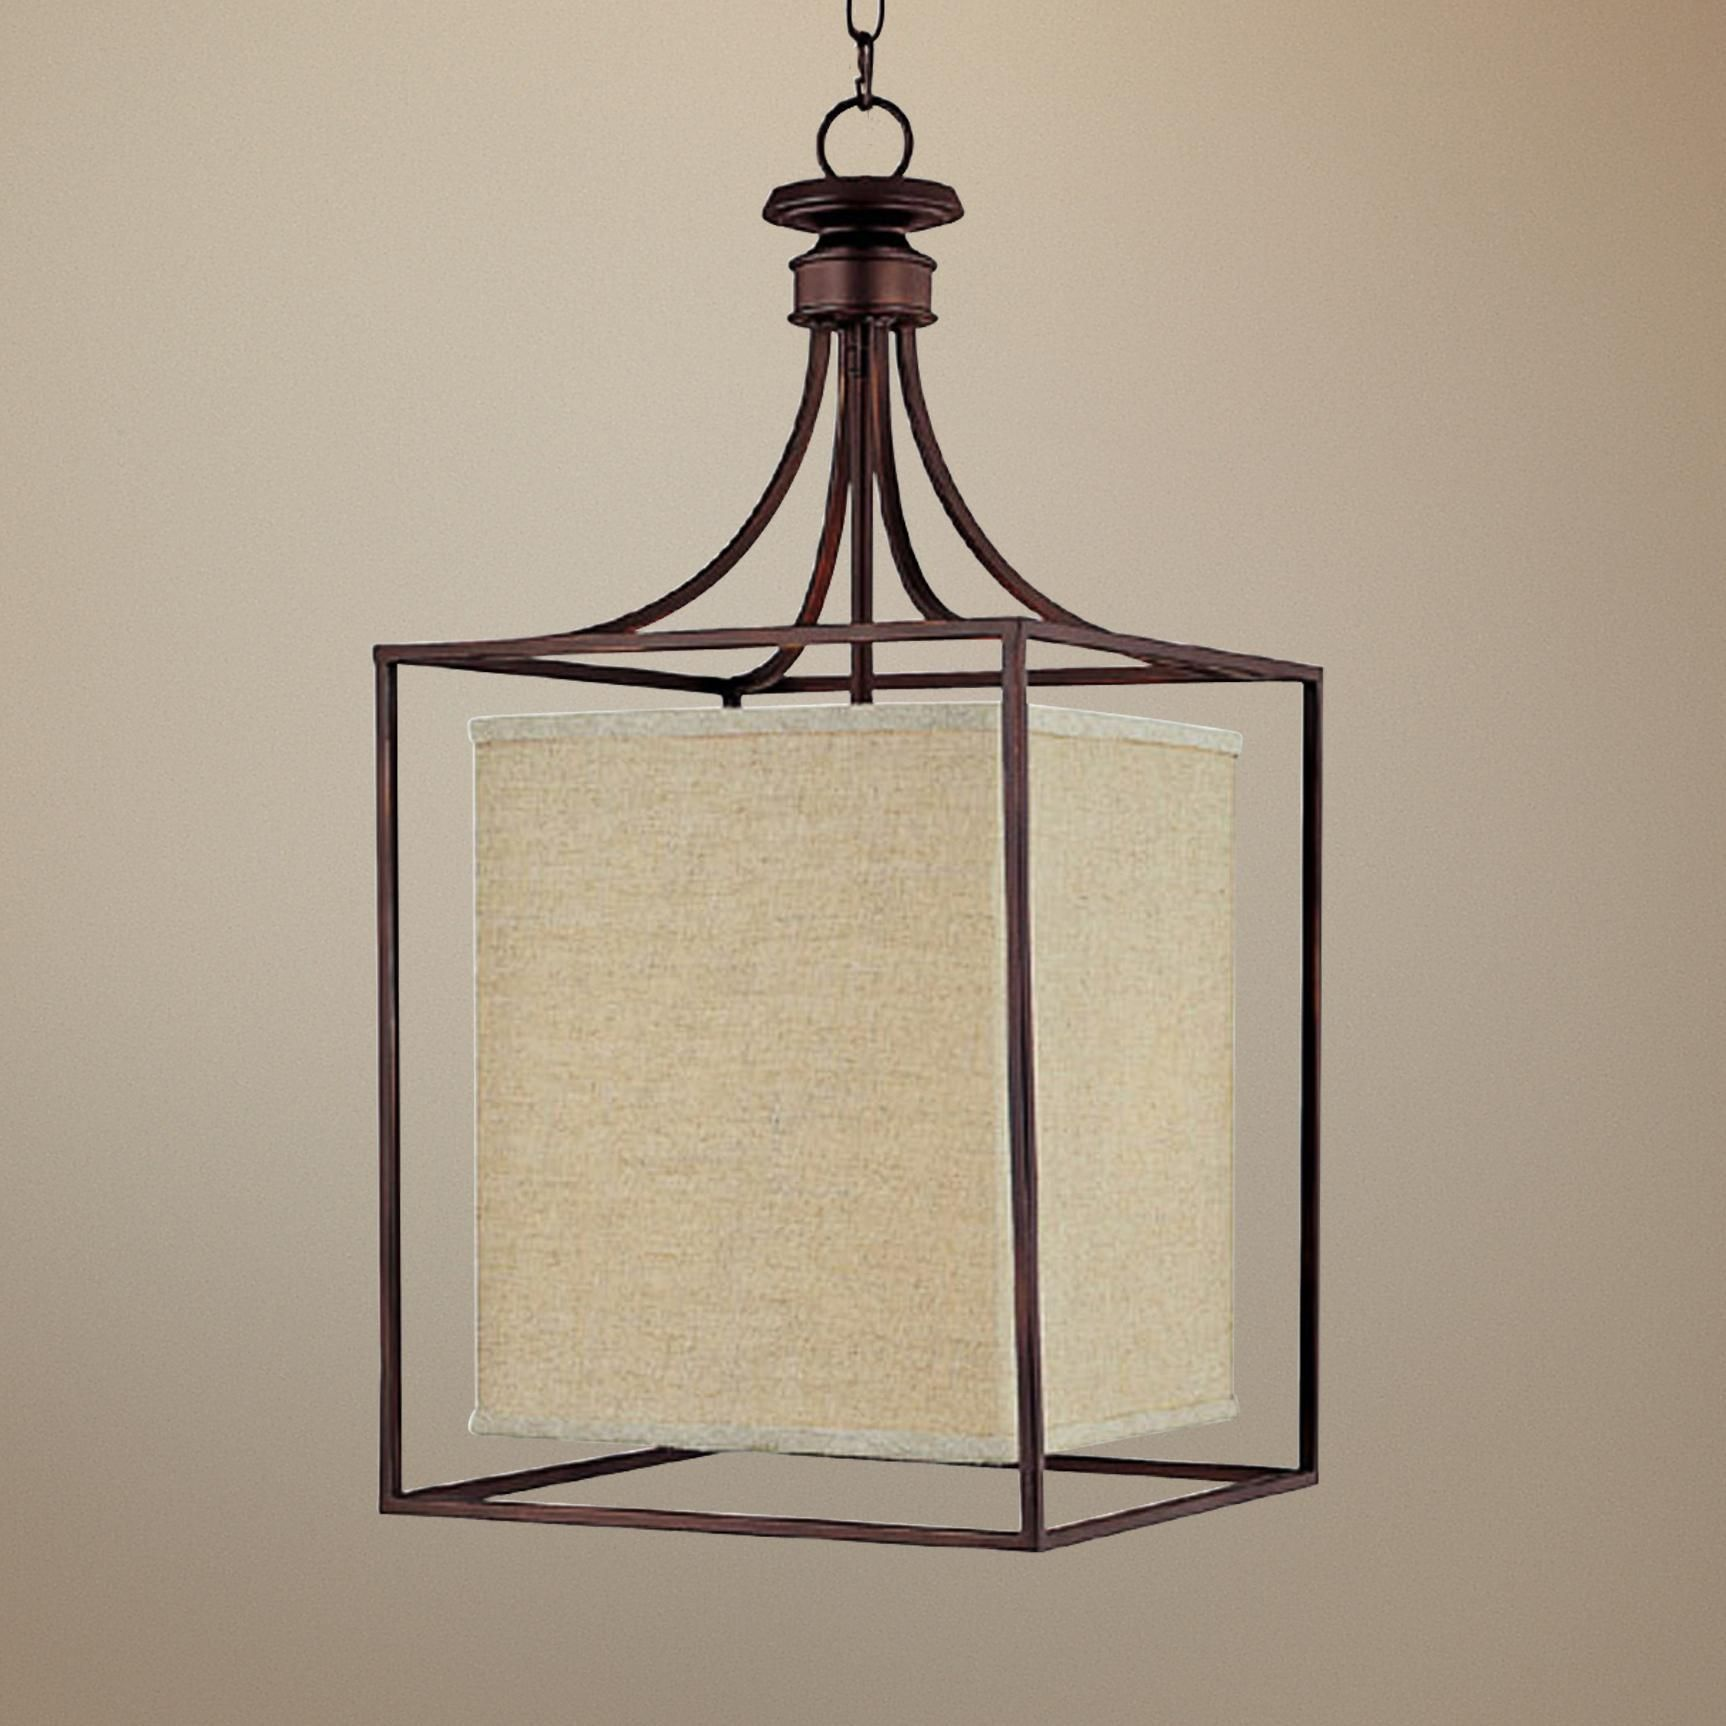 310 Midtown Collection Burnished Bronze Square Foyer Chandelier